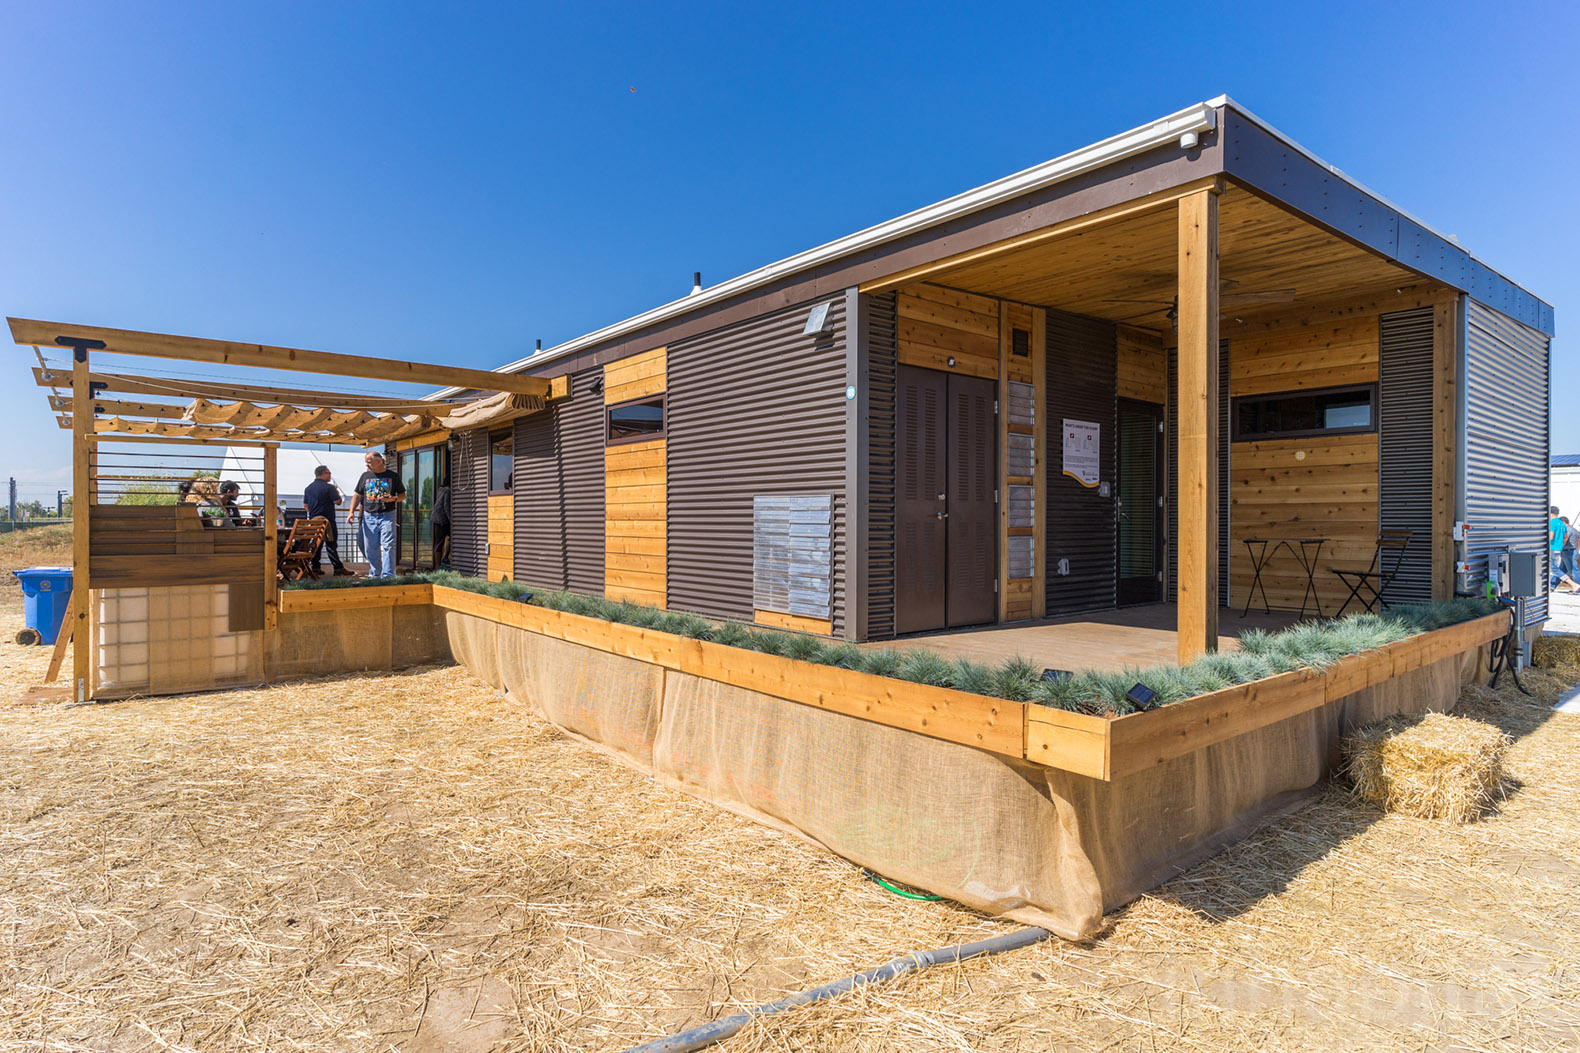 This House Made Of Drought Felled Wood Is A Water Saving